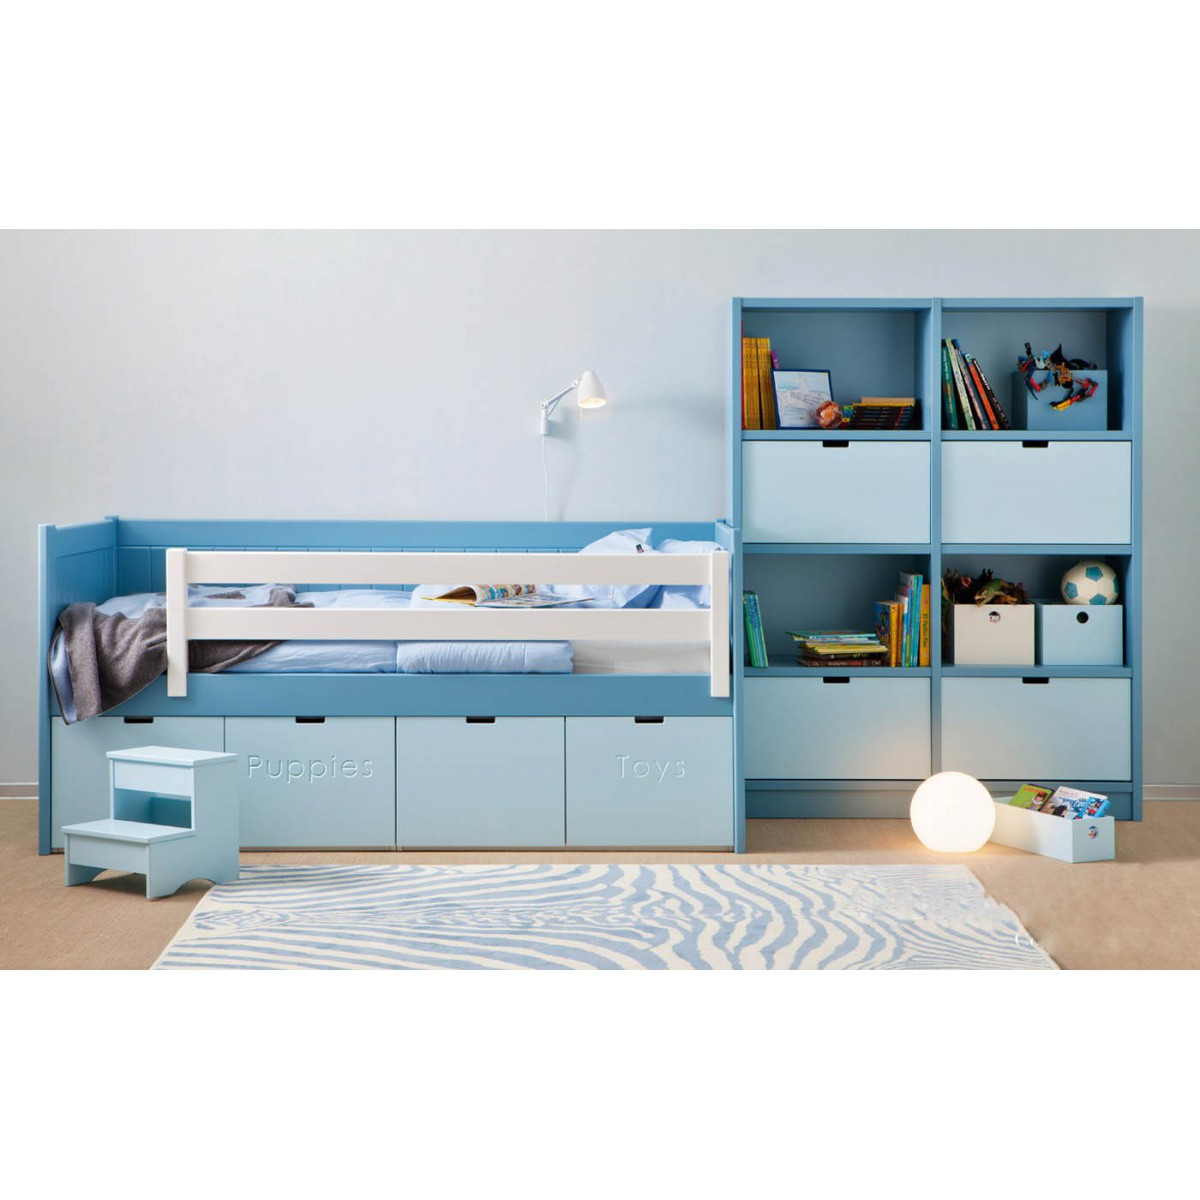 Distributeur officiel du mobilier enfants de qualit asoral for Enfant design